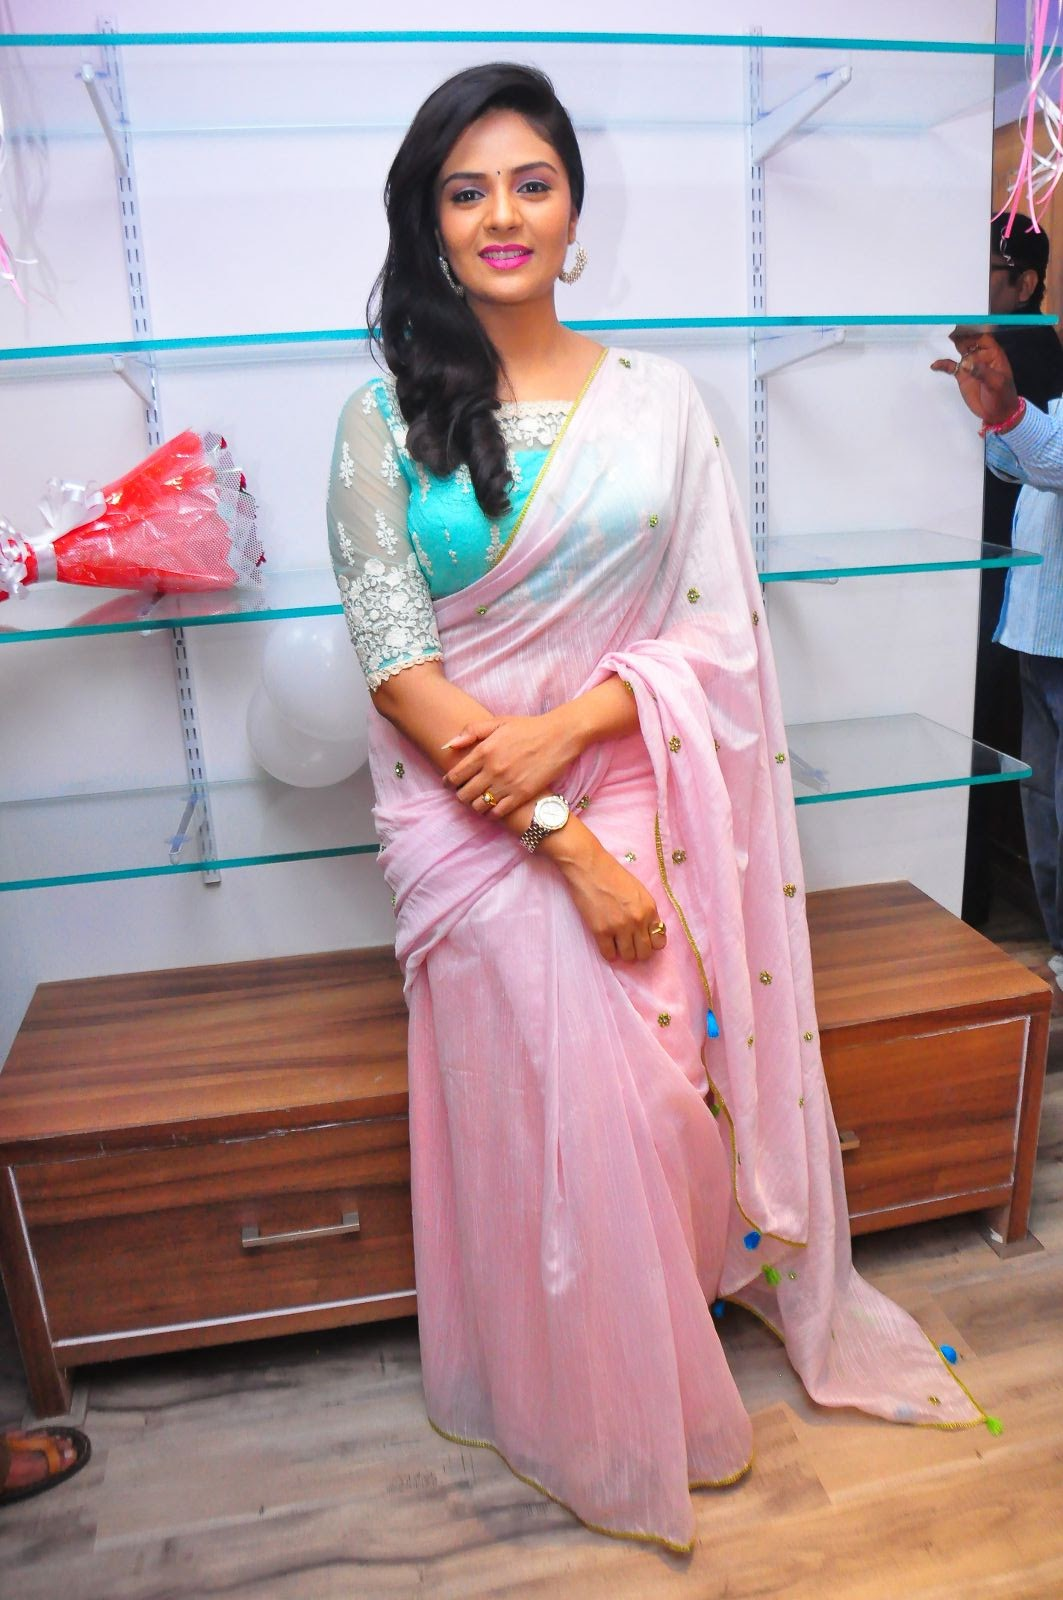 Srimukhi at Manvis launch event-HQ-Photo-1